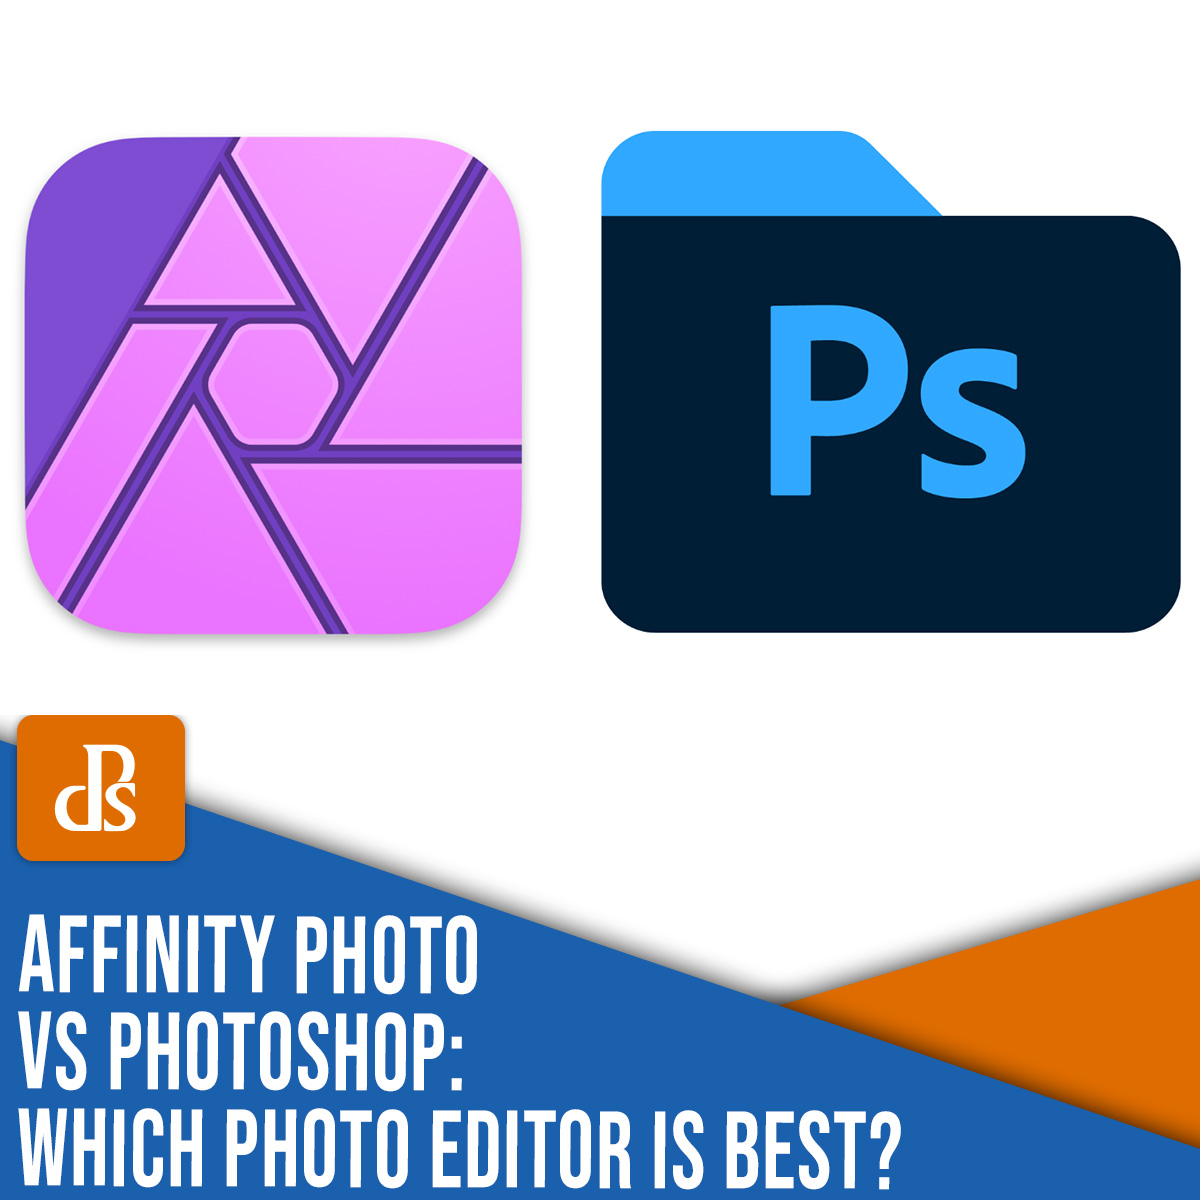 affinity photo vs photoshop: which photo editor is best